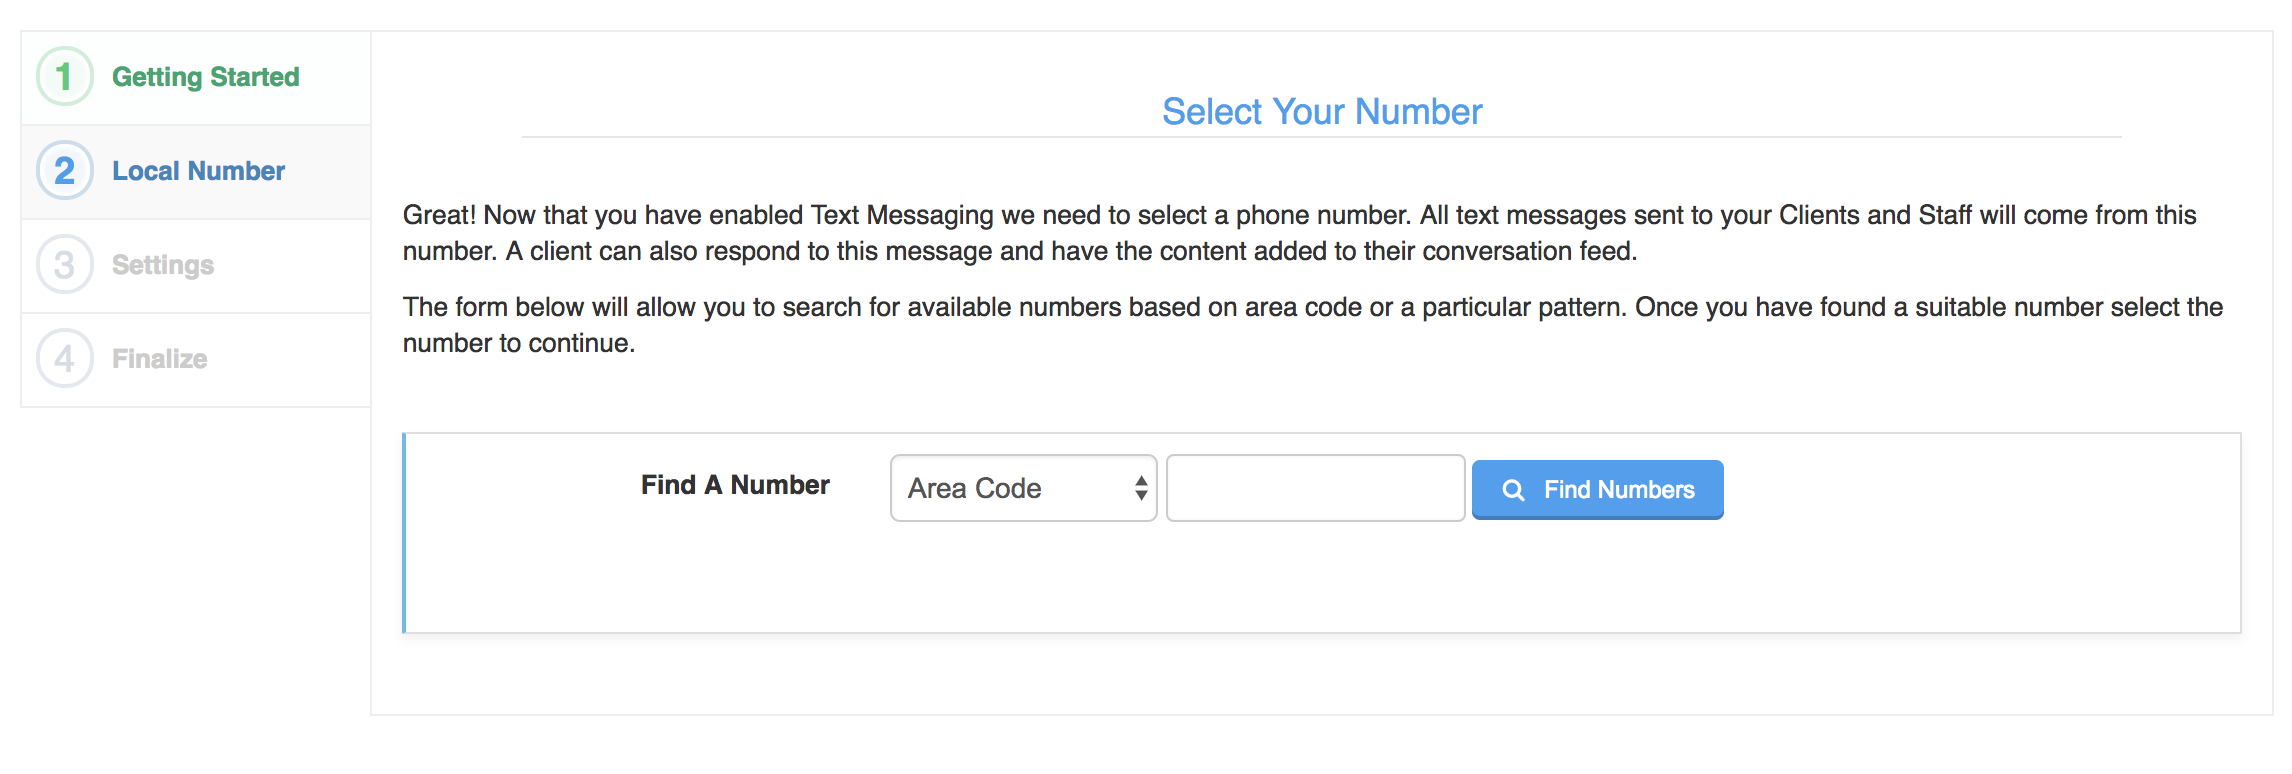 Selecting your text messaging number